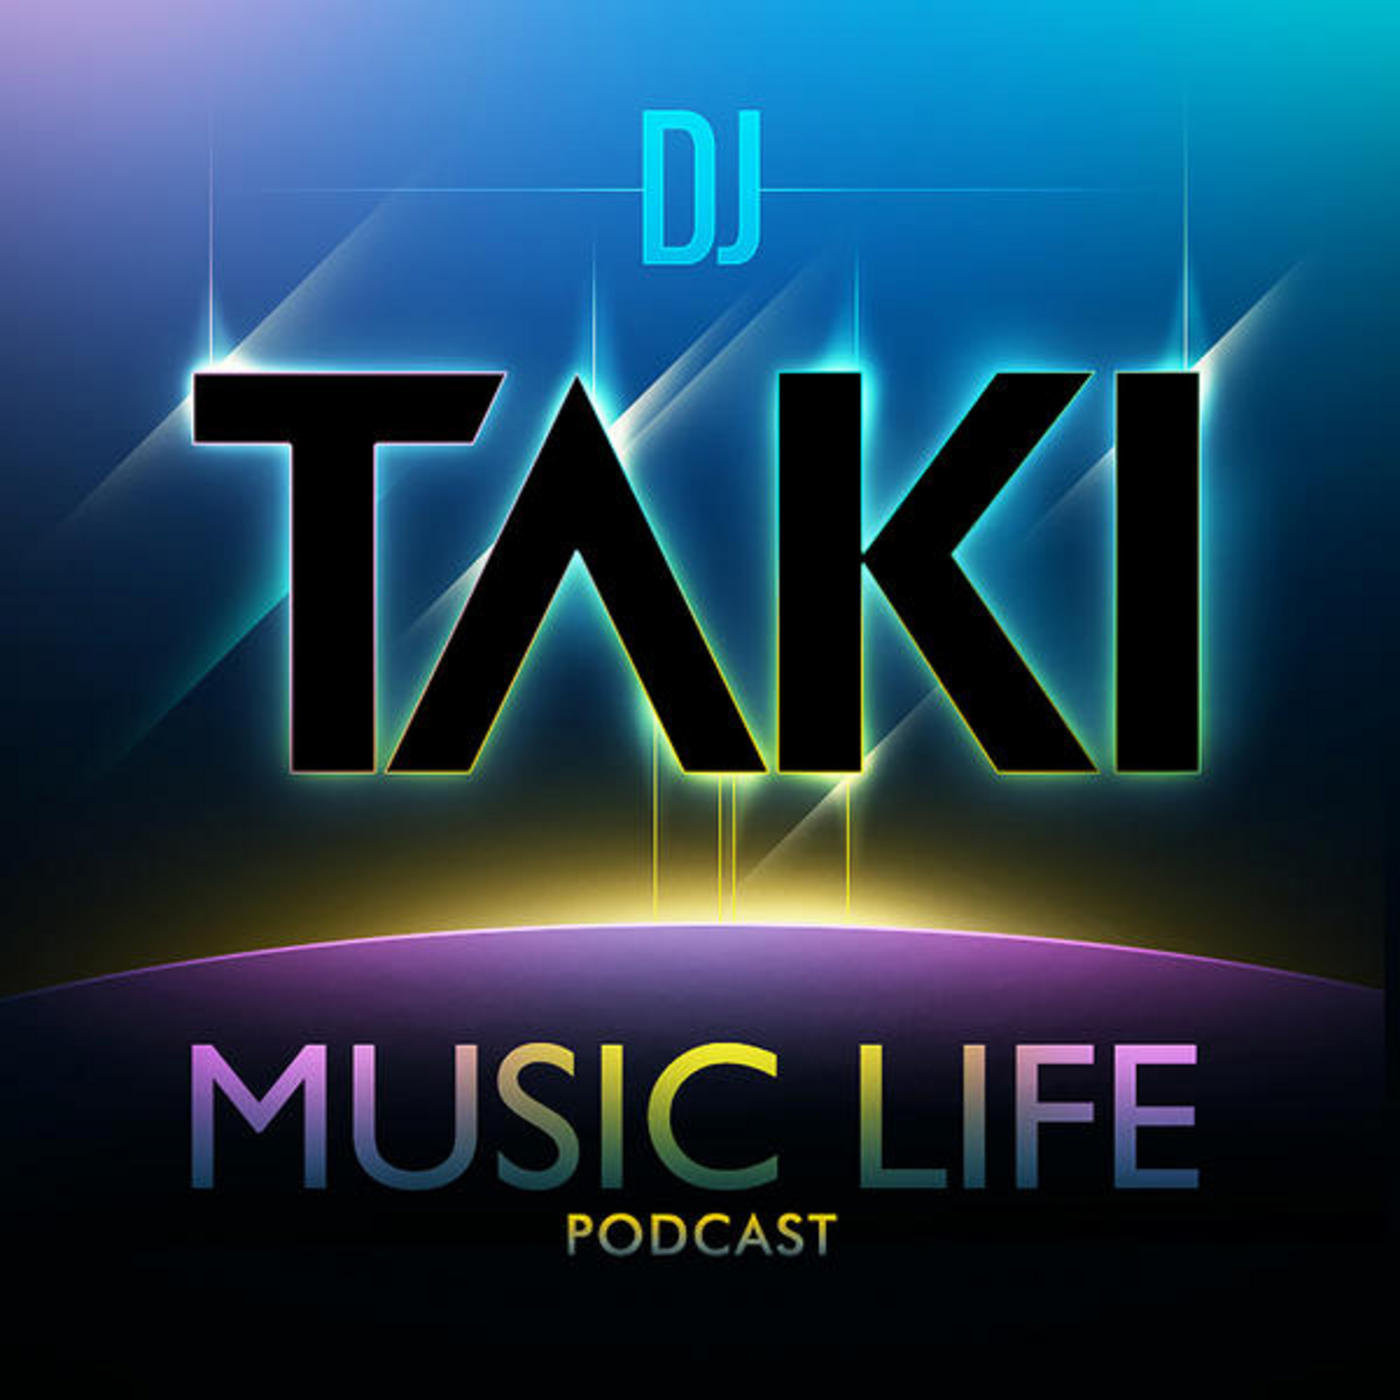 Taki Taki Lumba Mp3 Audio: Episode 006 : Summer Electro Fever En DJ Taki Music Life